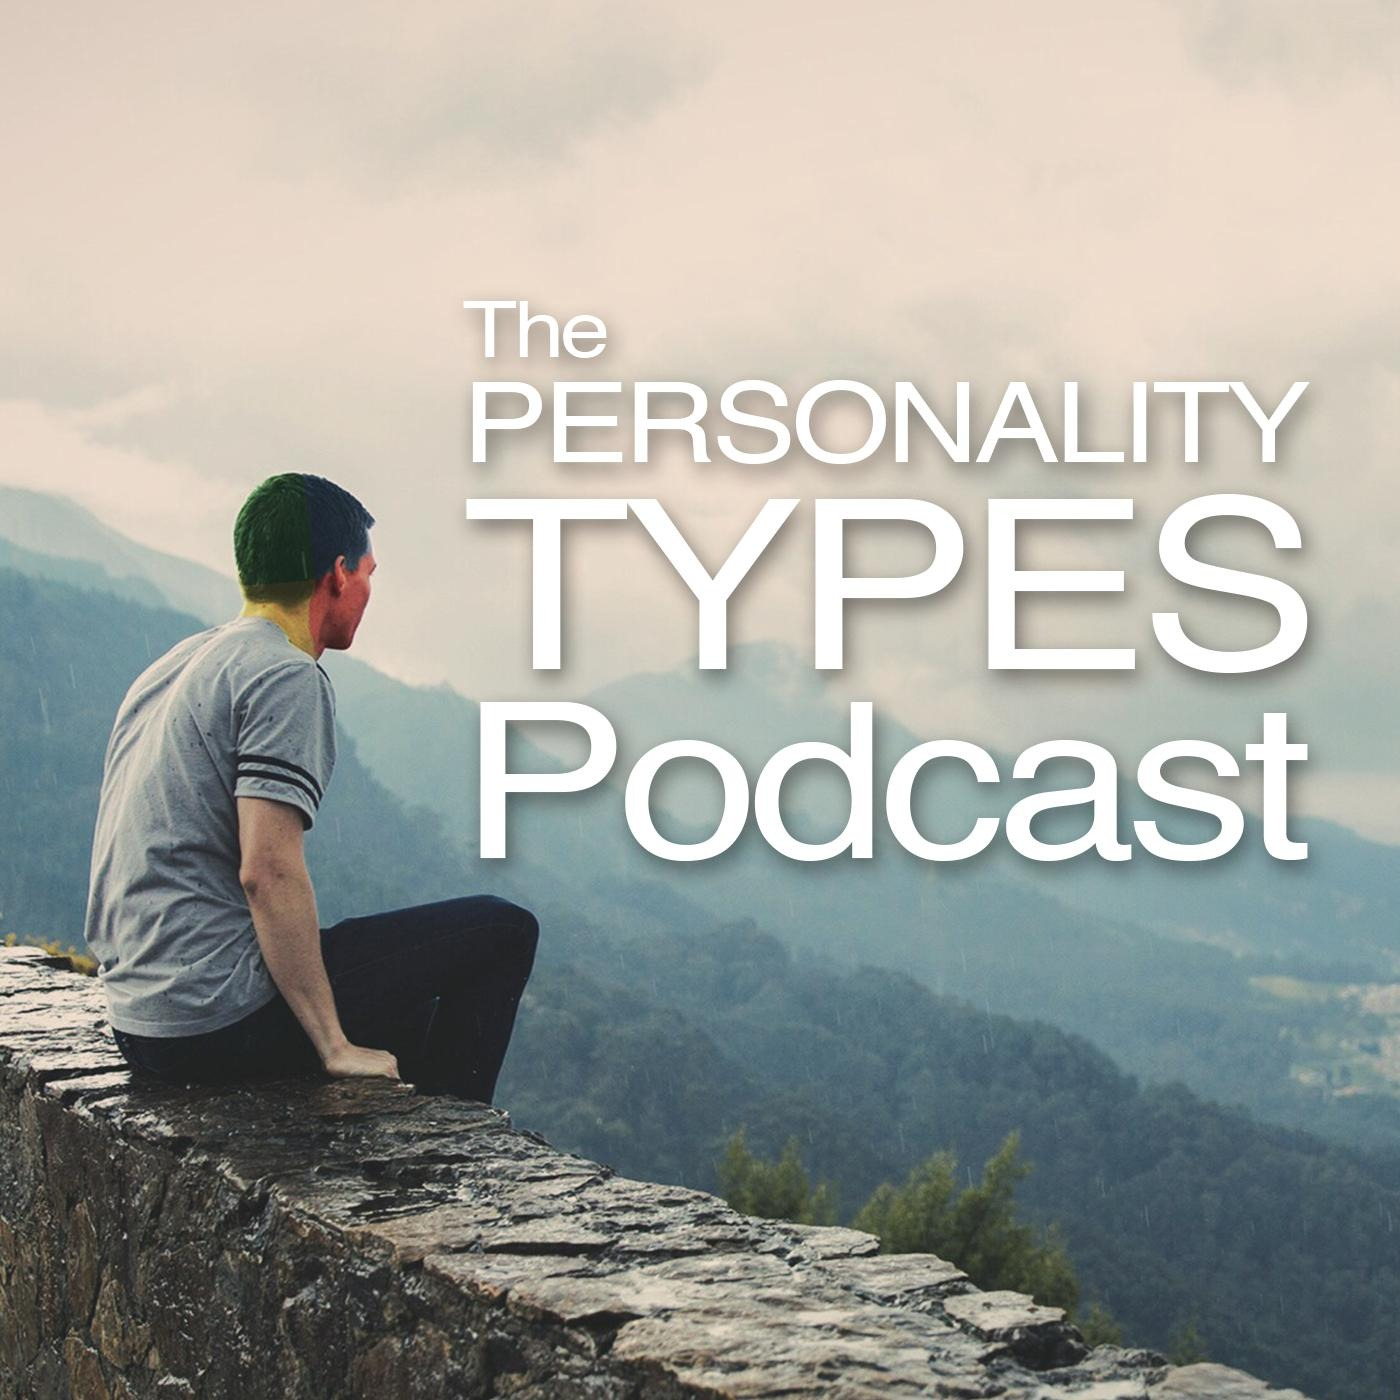 The Personality Types Podcast